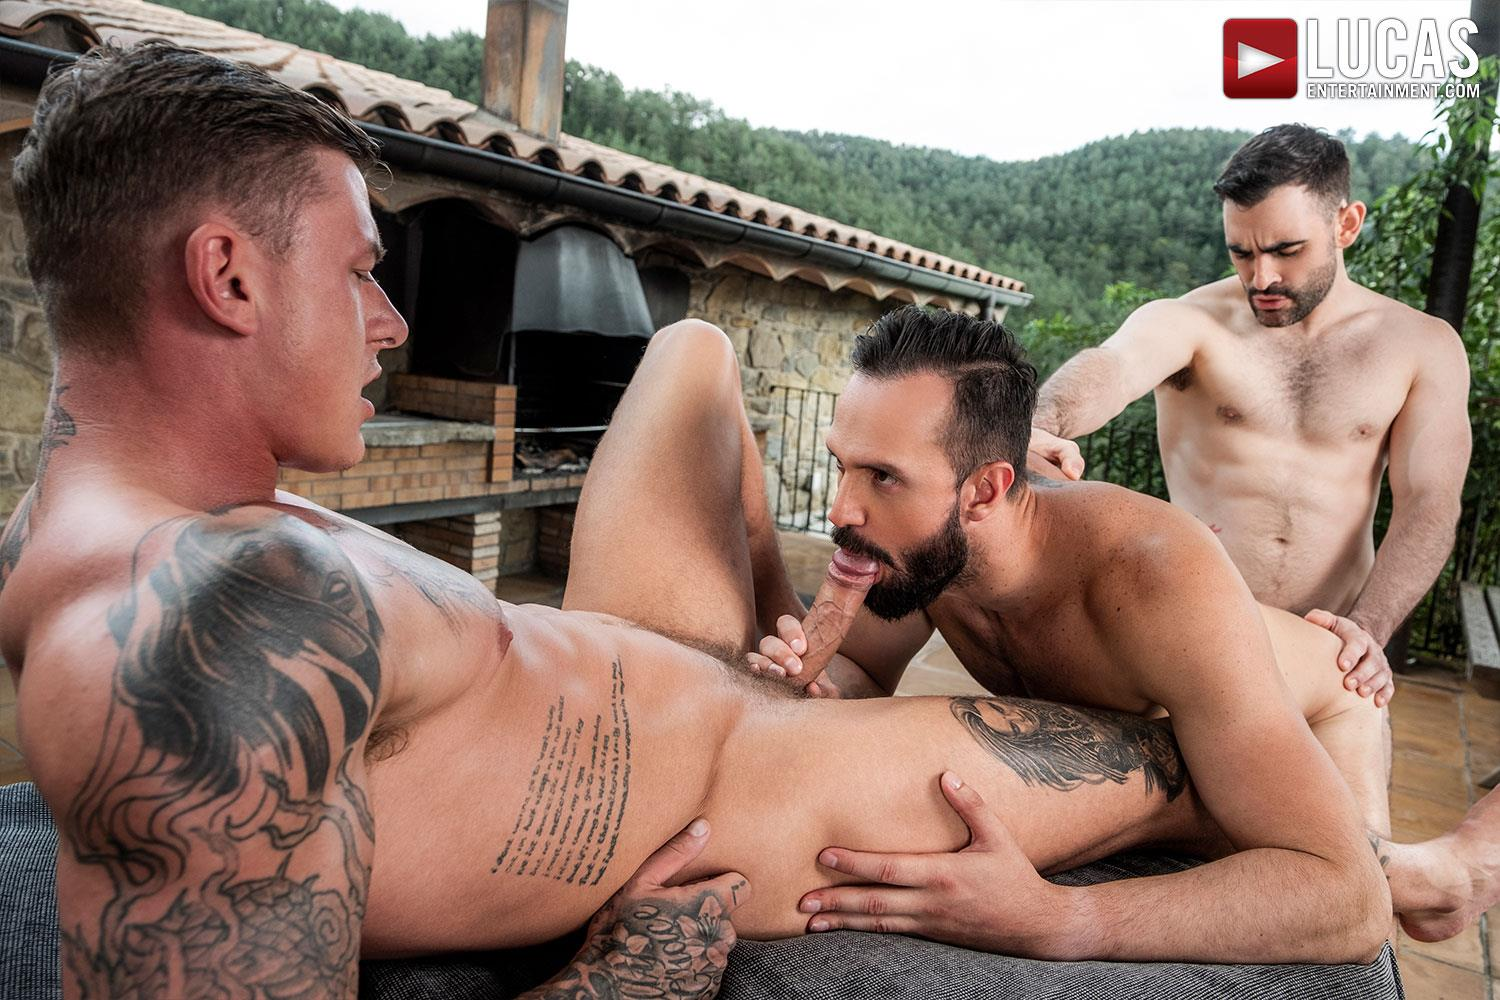 Lucas-Andy-Onassis-and-Geordie-Jackson-and-Max-Arion-Huge-Uncut-Cocks-Bareback-15 Bareback Outdoor Threesome Featuring Three Huge Uncut Cocks